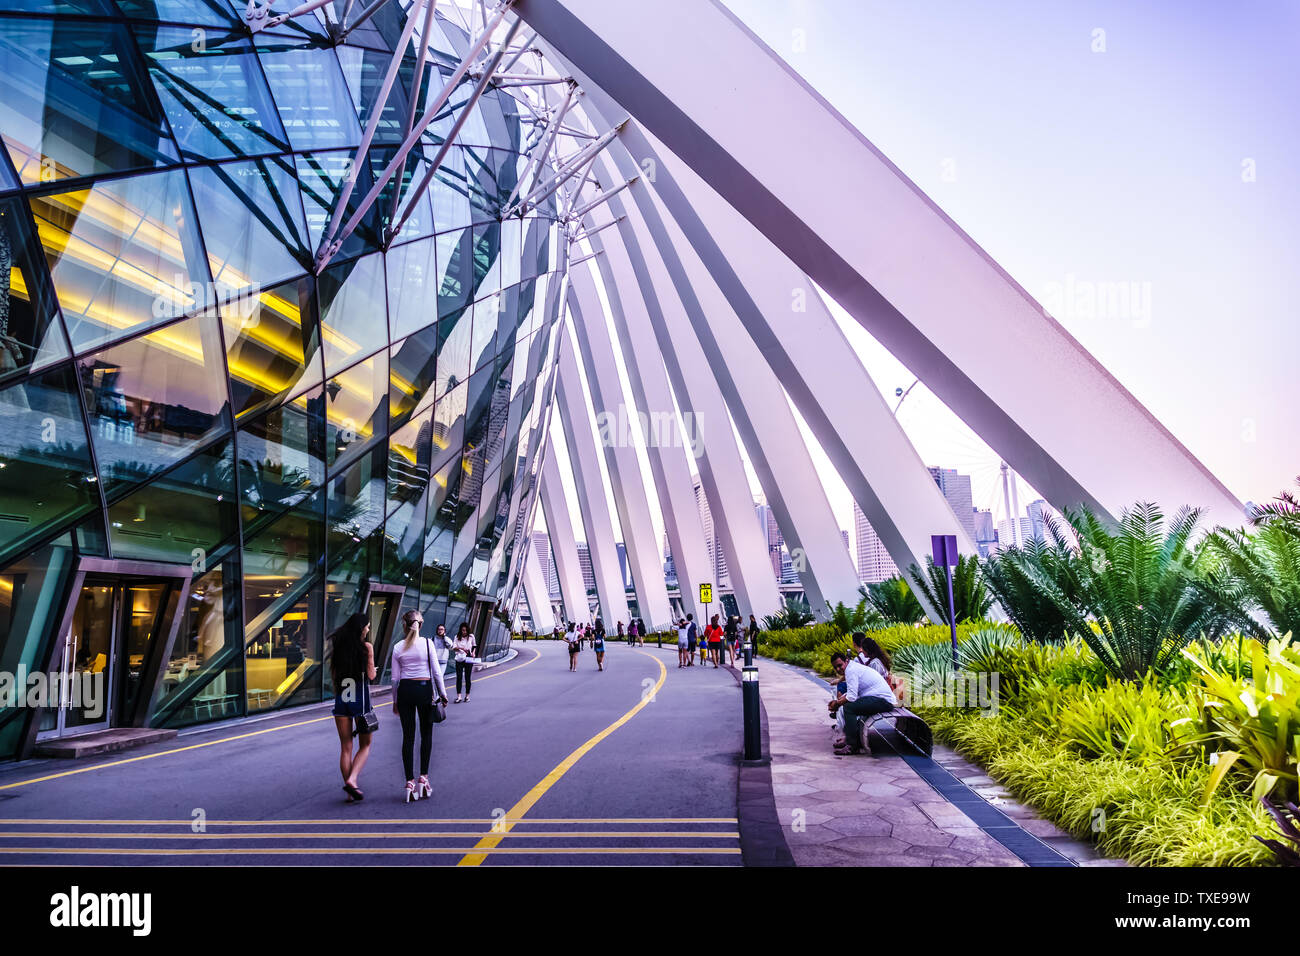 Singapore - Mar 15, 2019: Gardens by the bay, Flow Dome exterior architecture features. Stock Photo